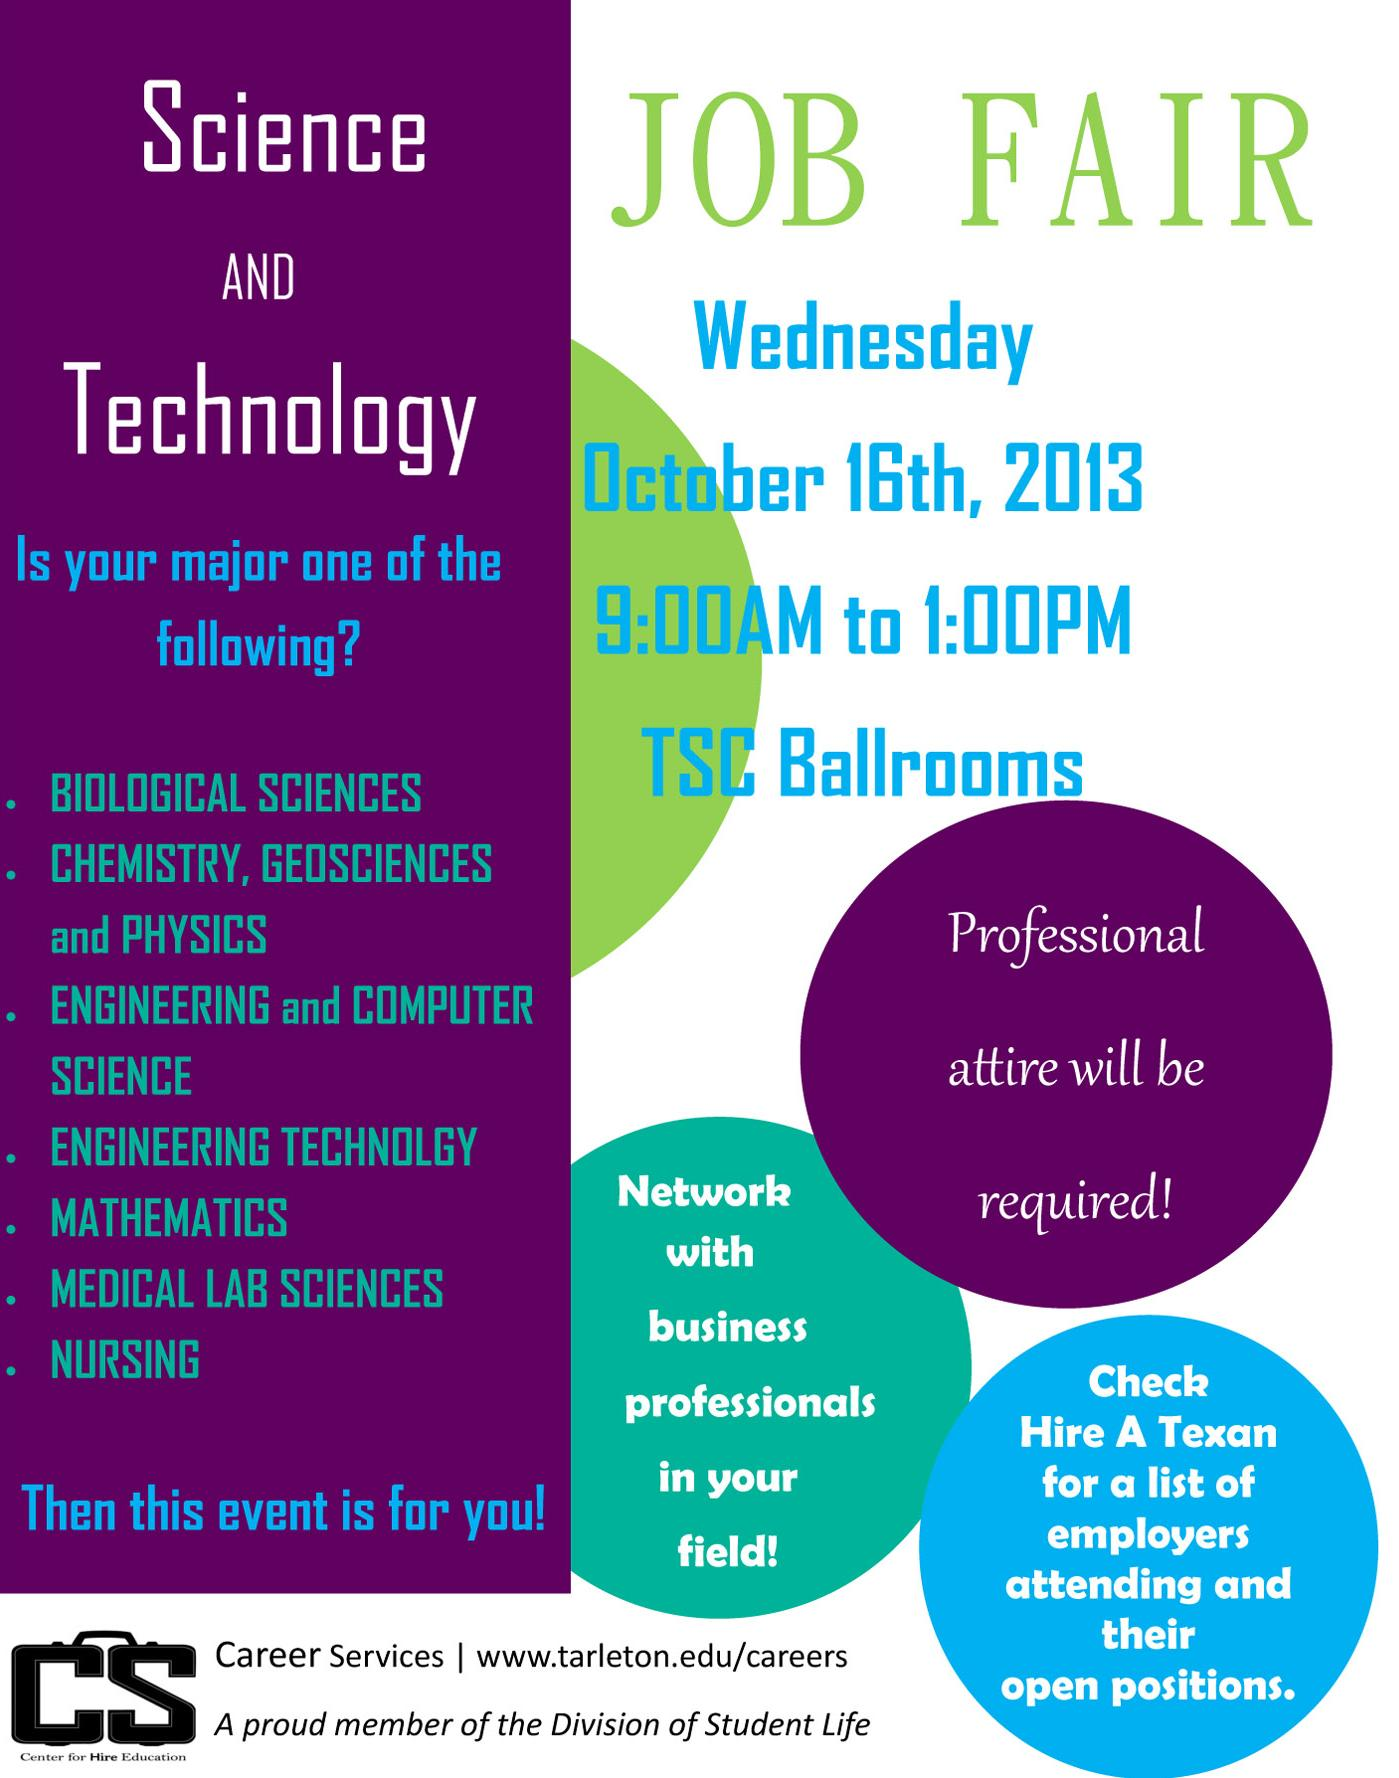 Science & Technology Job Fair